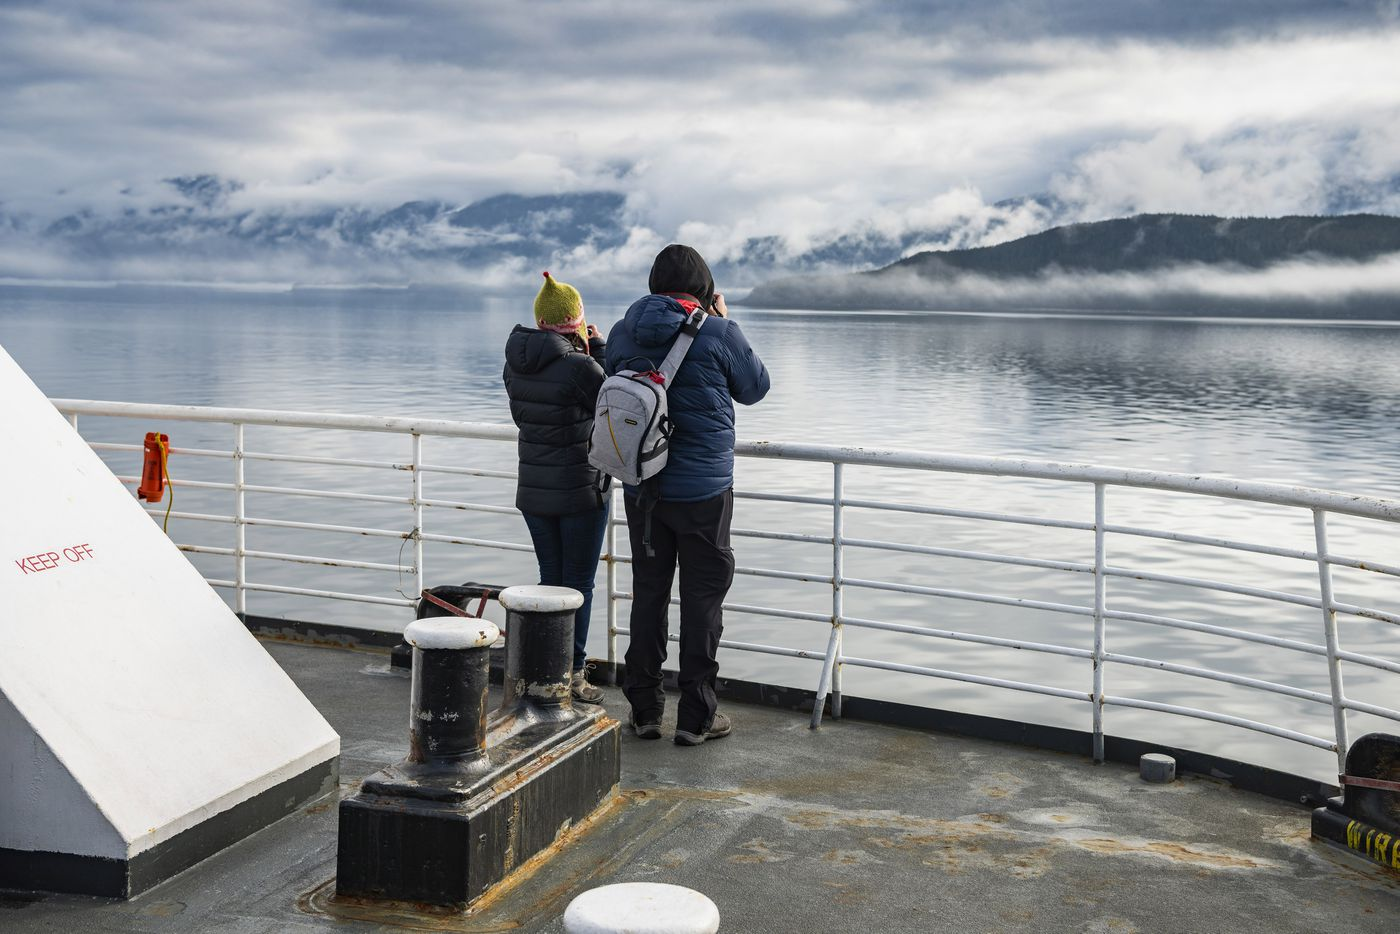 Ferry passengers photograph the foggy shores of Lynn Canal, a 90-mile-long fjord lined with glaciers and snow-capped mountains, in Alaska, April 2018. Following in the footsteps of John Muir — and millions of modern cruise ship passengers — one marine ferry at a time. (Christopher Miller/The New York Times)